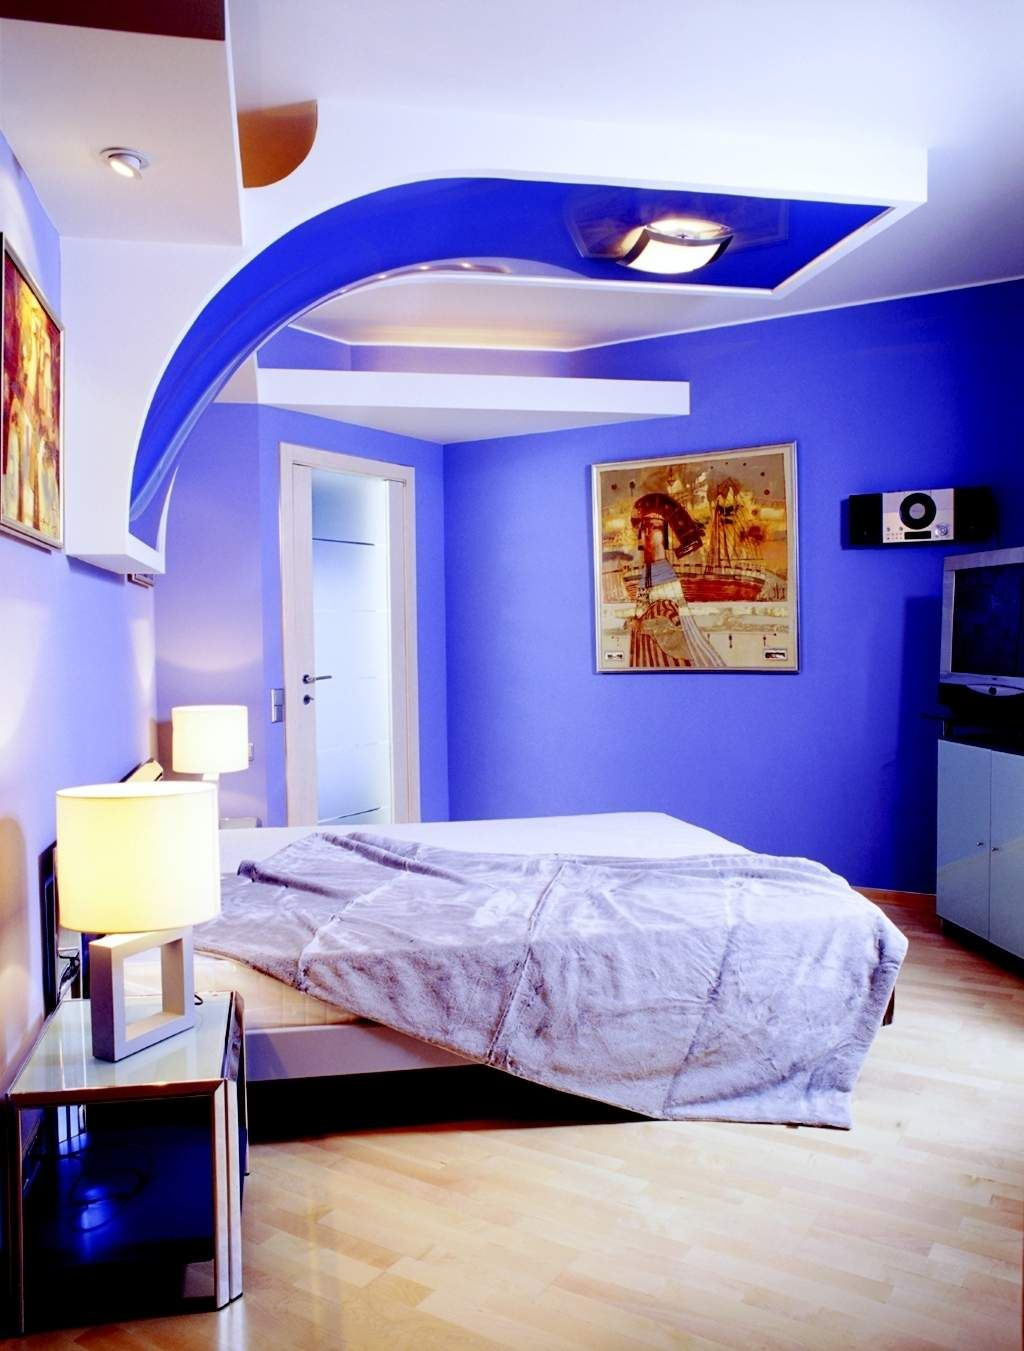 kids bedroom futuristic design of boys bedroom in bright blue and white color scheme cool color - Bedroom Colors Blue